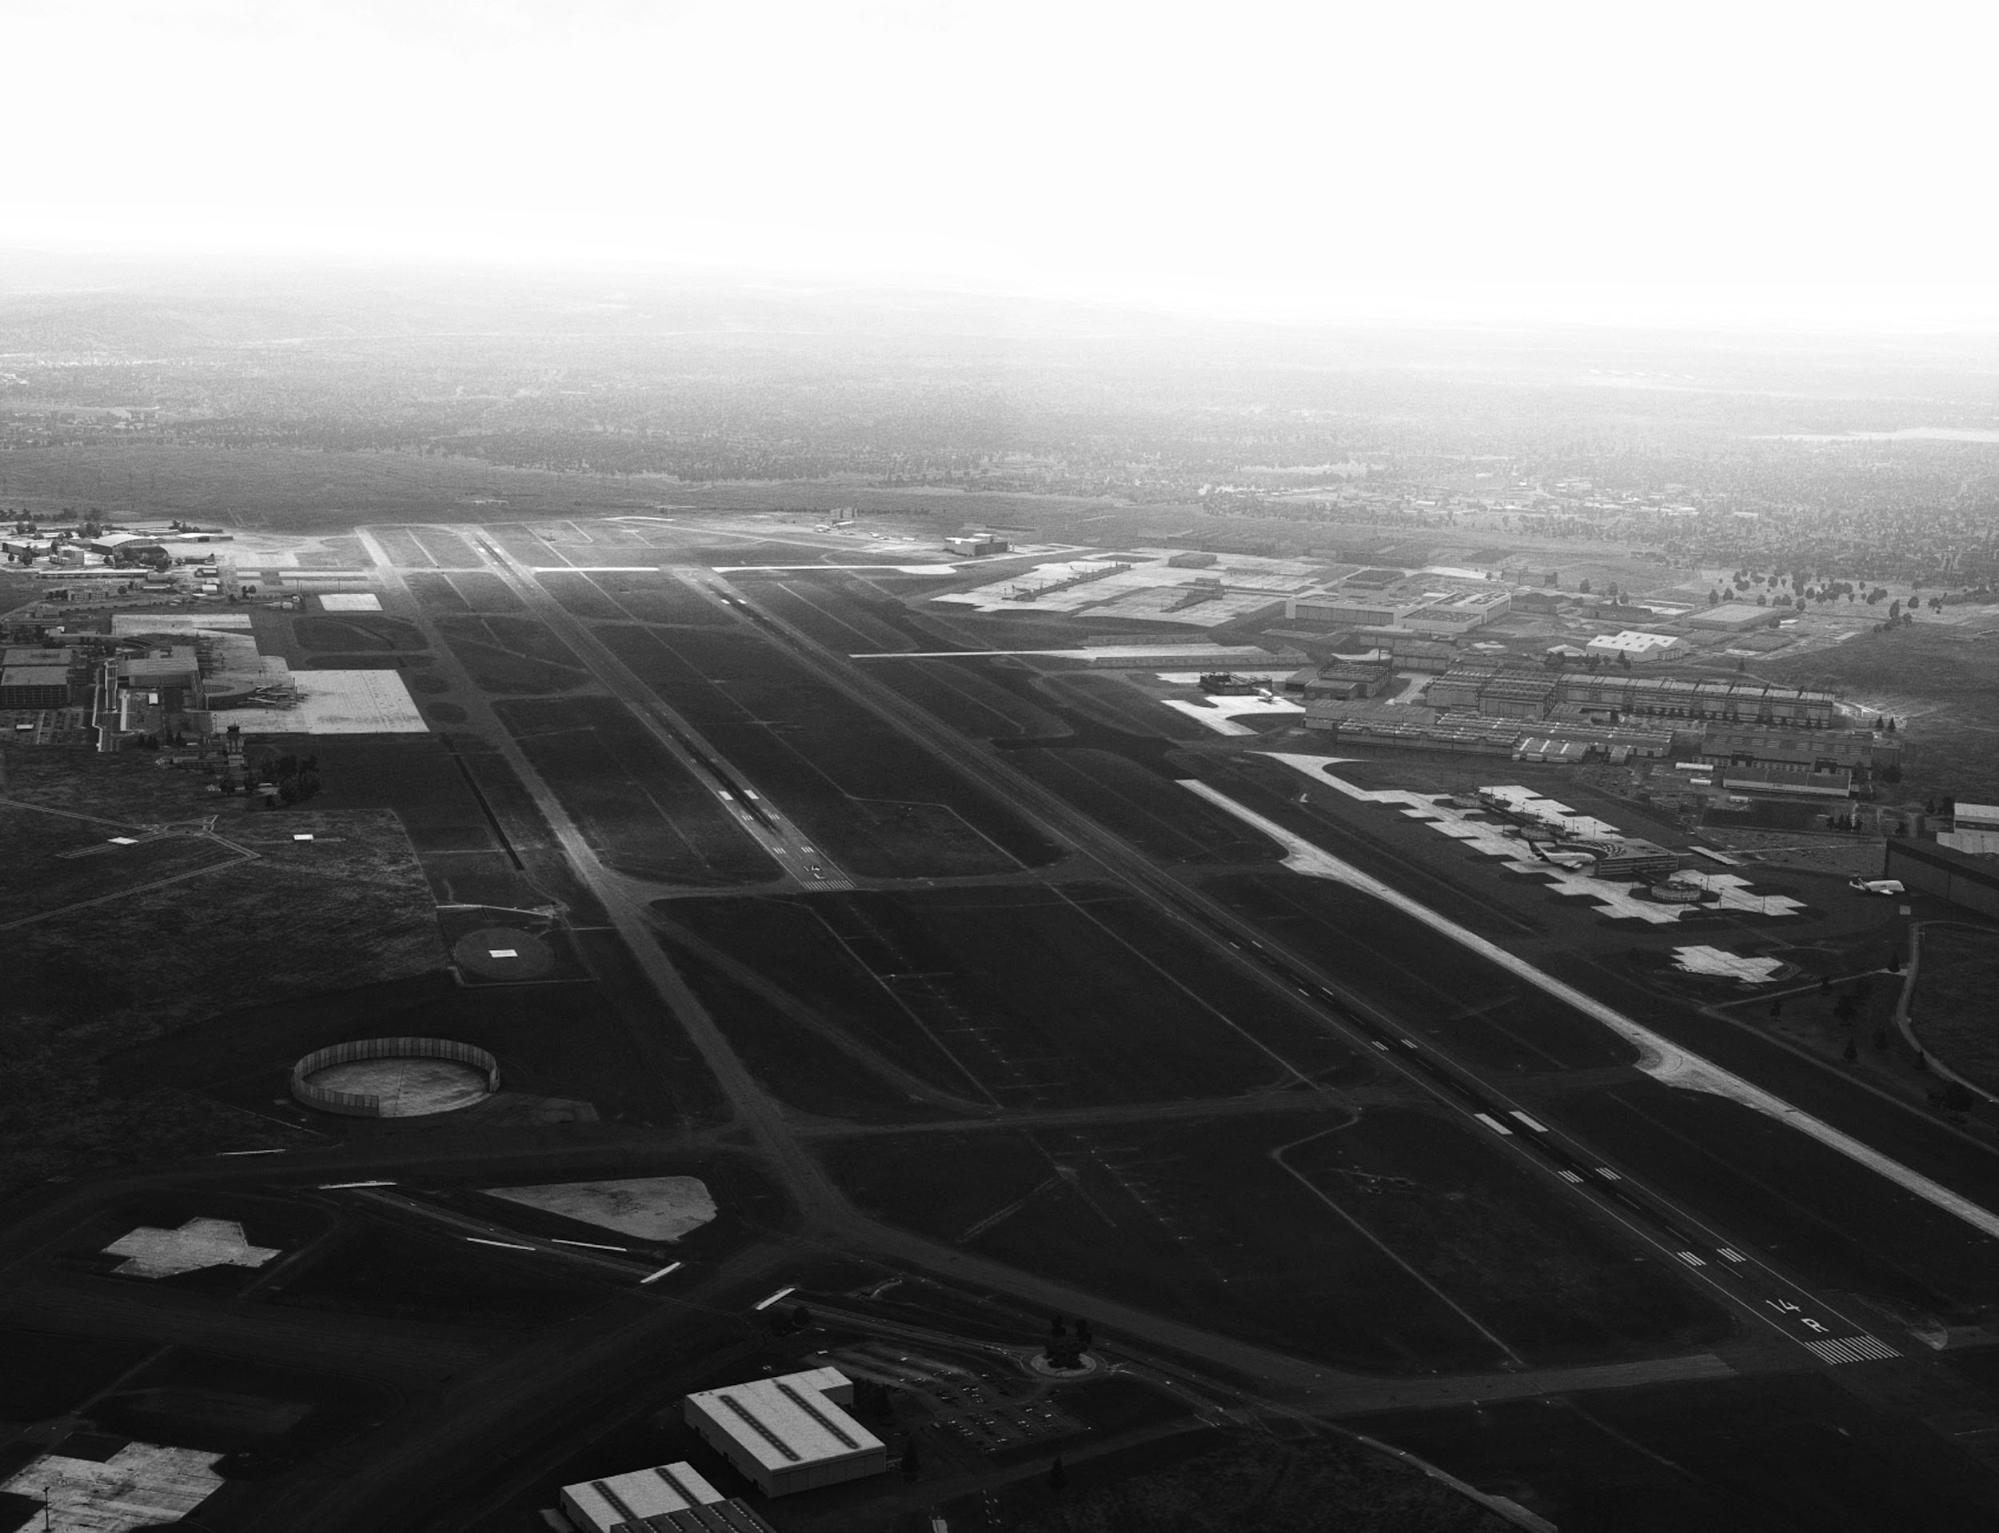 A synthetic image of Toulouse-Blagnac airport, as generated in X-Plane with custom post-processing shaders, displaying backlit atmospheric effects and broken cloud cover over the airport.